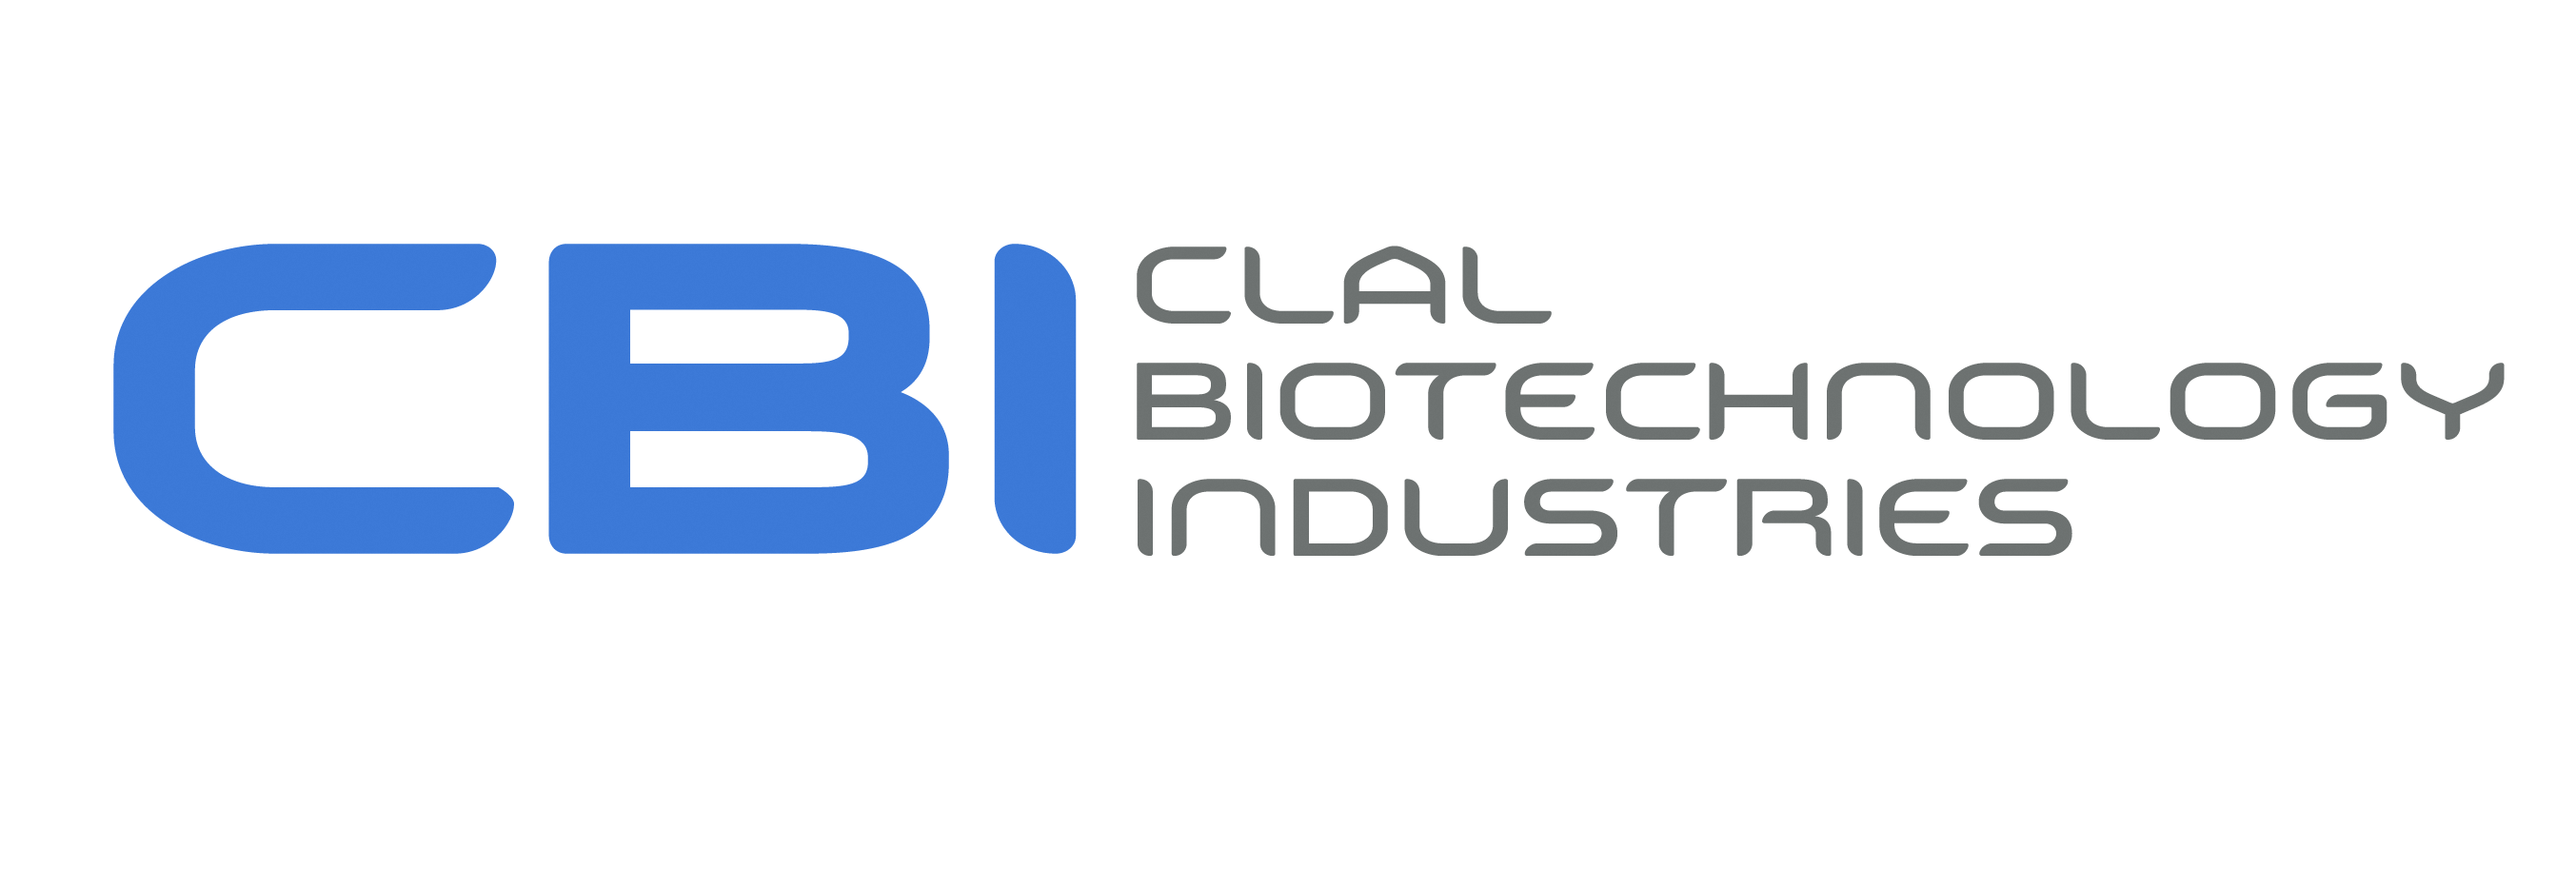 Clal Biotechnology Industries  (CBI)